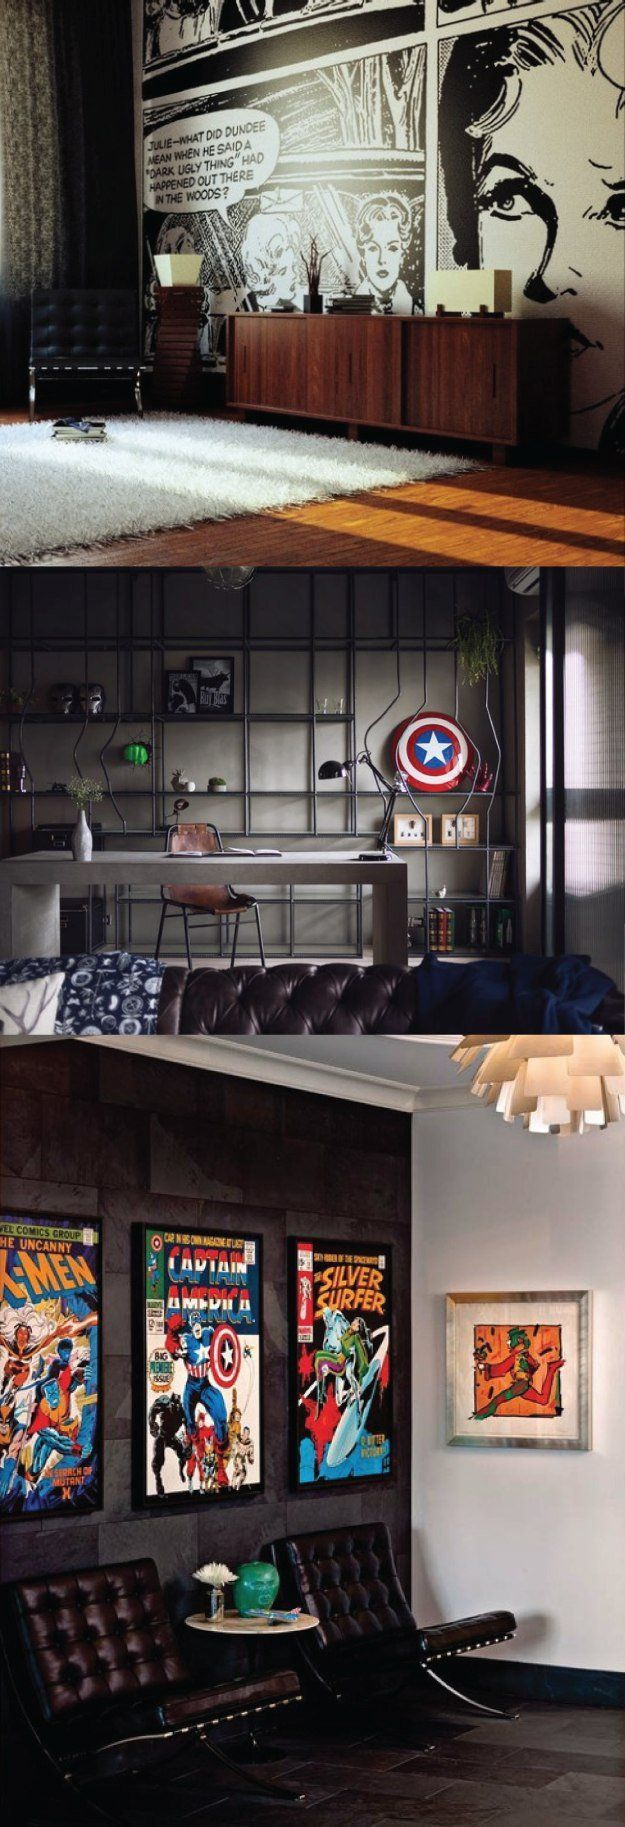 Comic Themed Men's Office. This dark black wall studio has a touch of superhero and comic decor paired with elegant modern furnishings to show taste and style. | 10 Man Cave Ideas For Real Men http://diyready.com/man-cave-ideas-for-real-men/